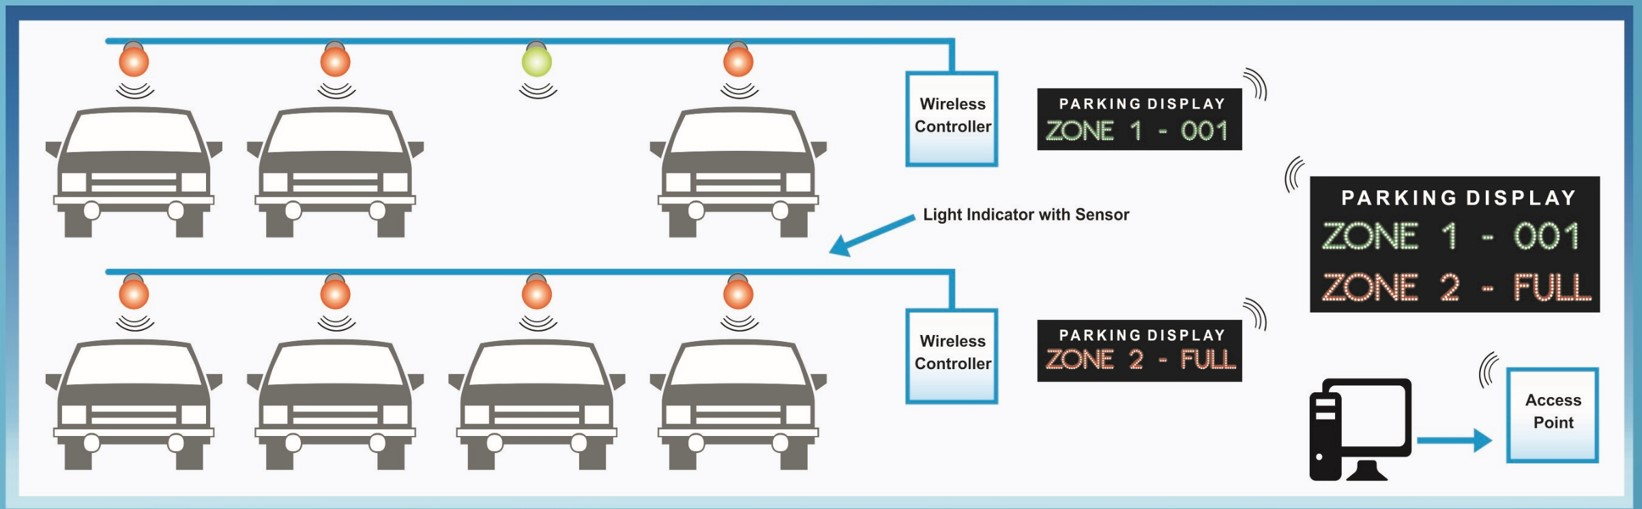 wifi parking management system